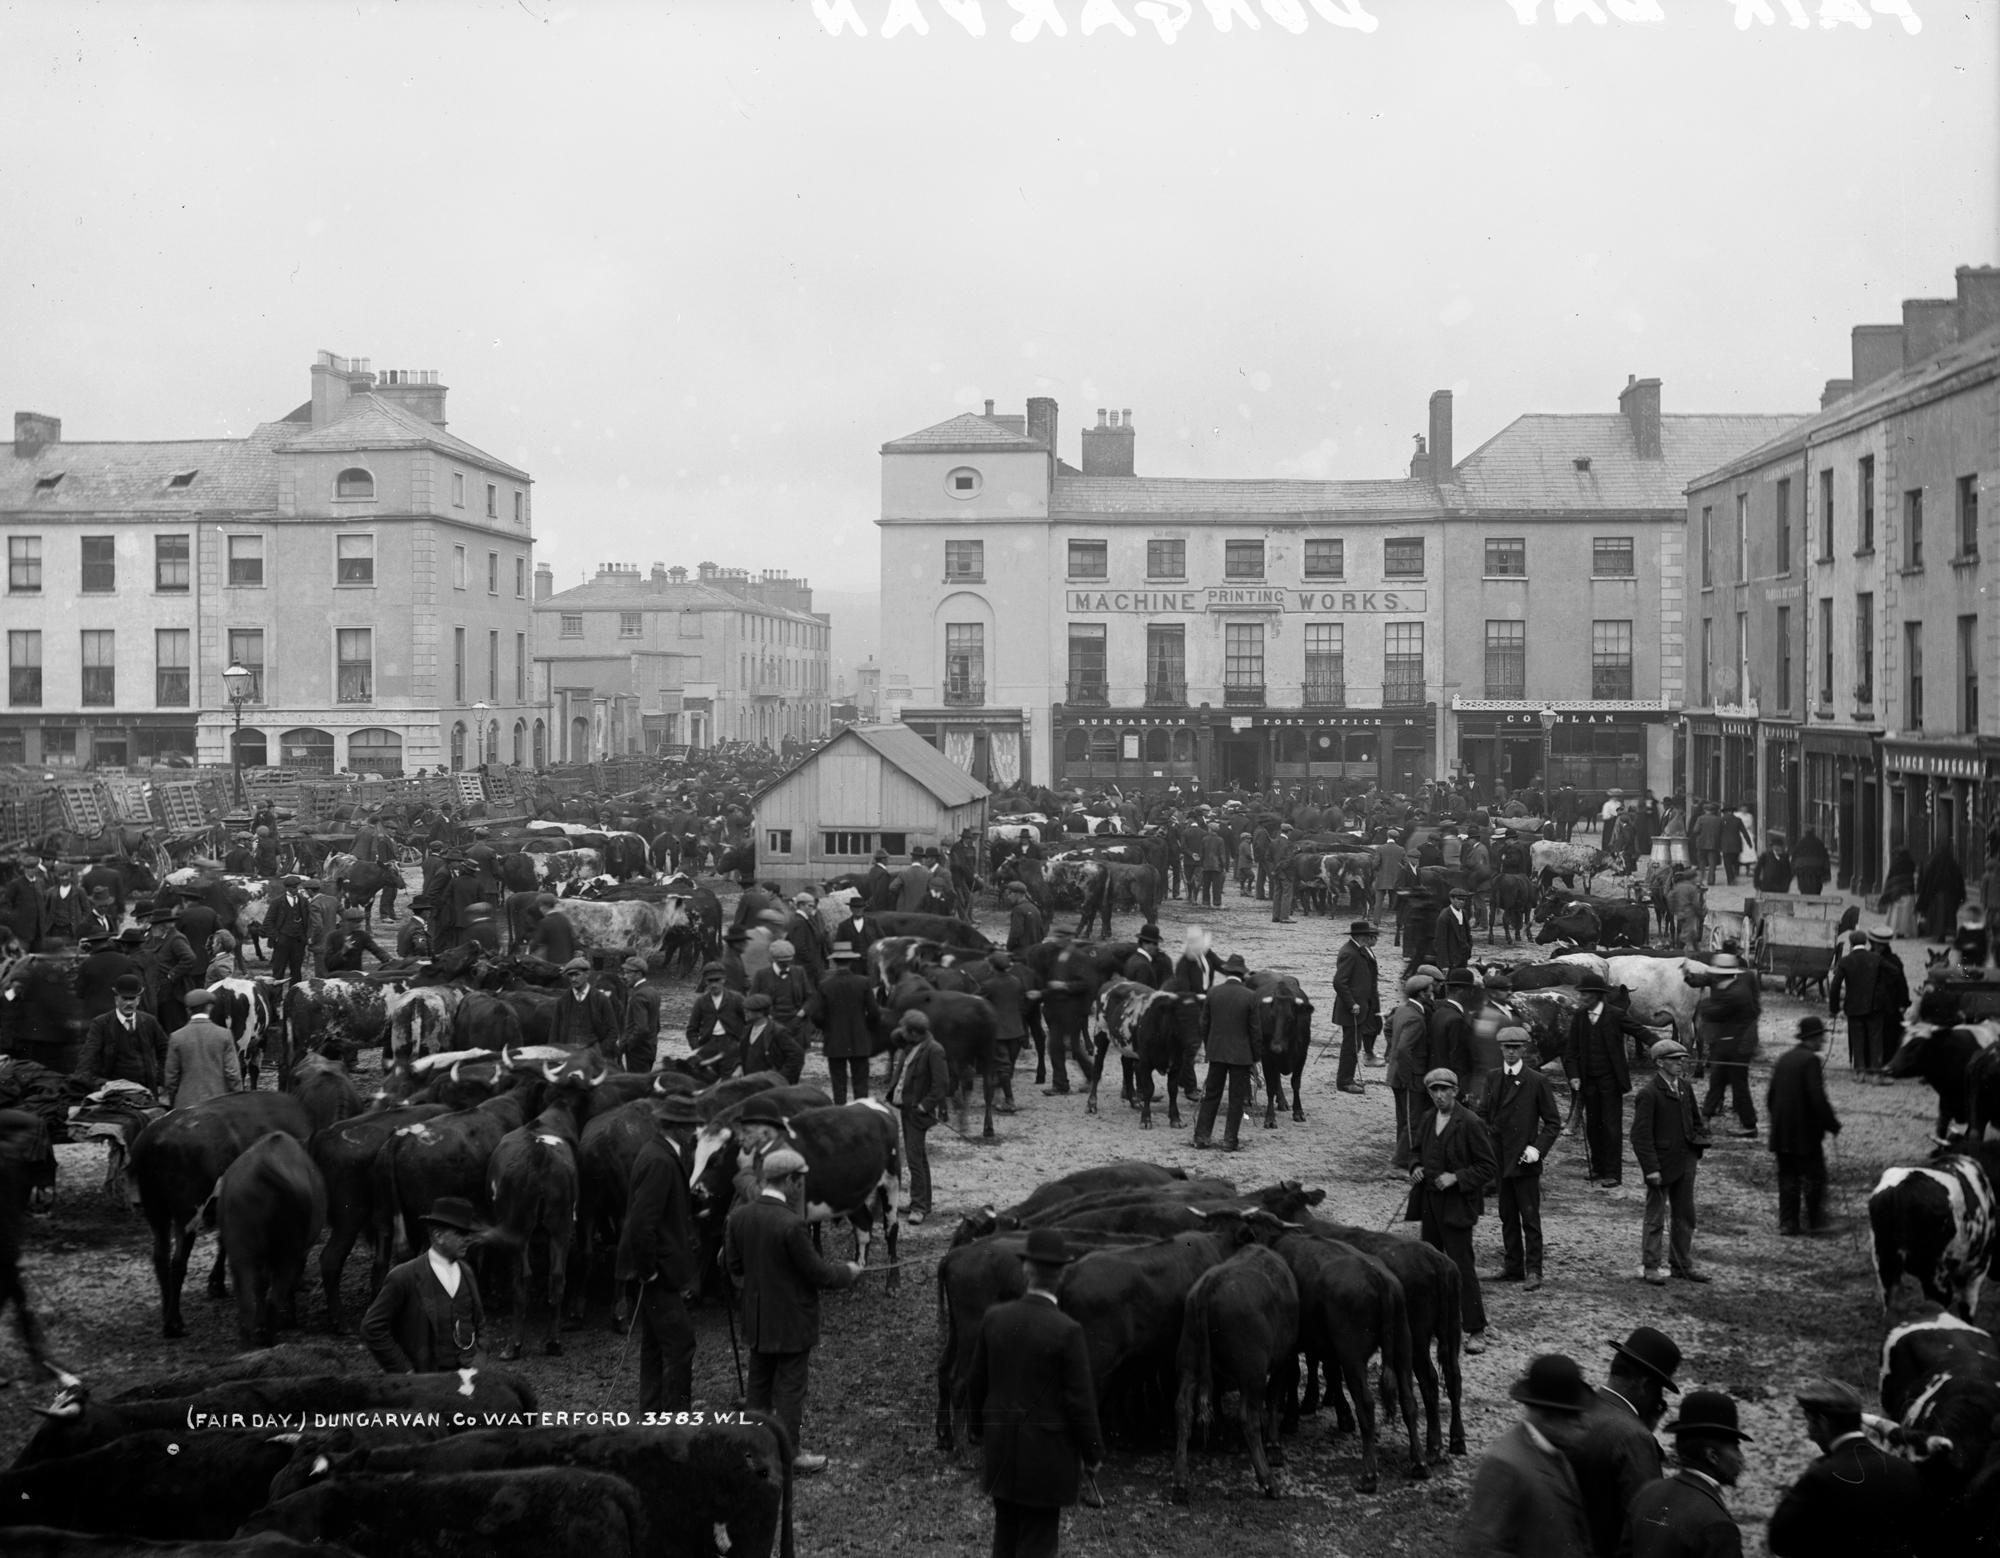 Fair Day, Dungarvan, Co. Waterford